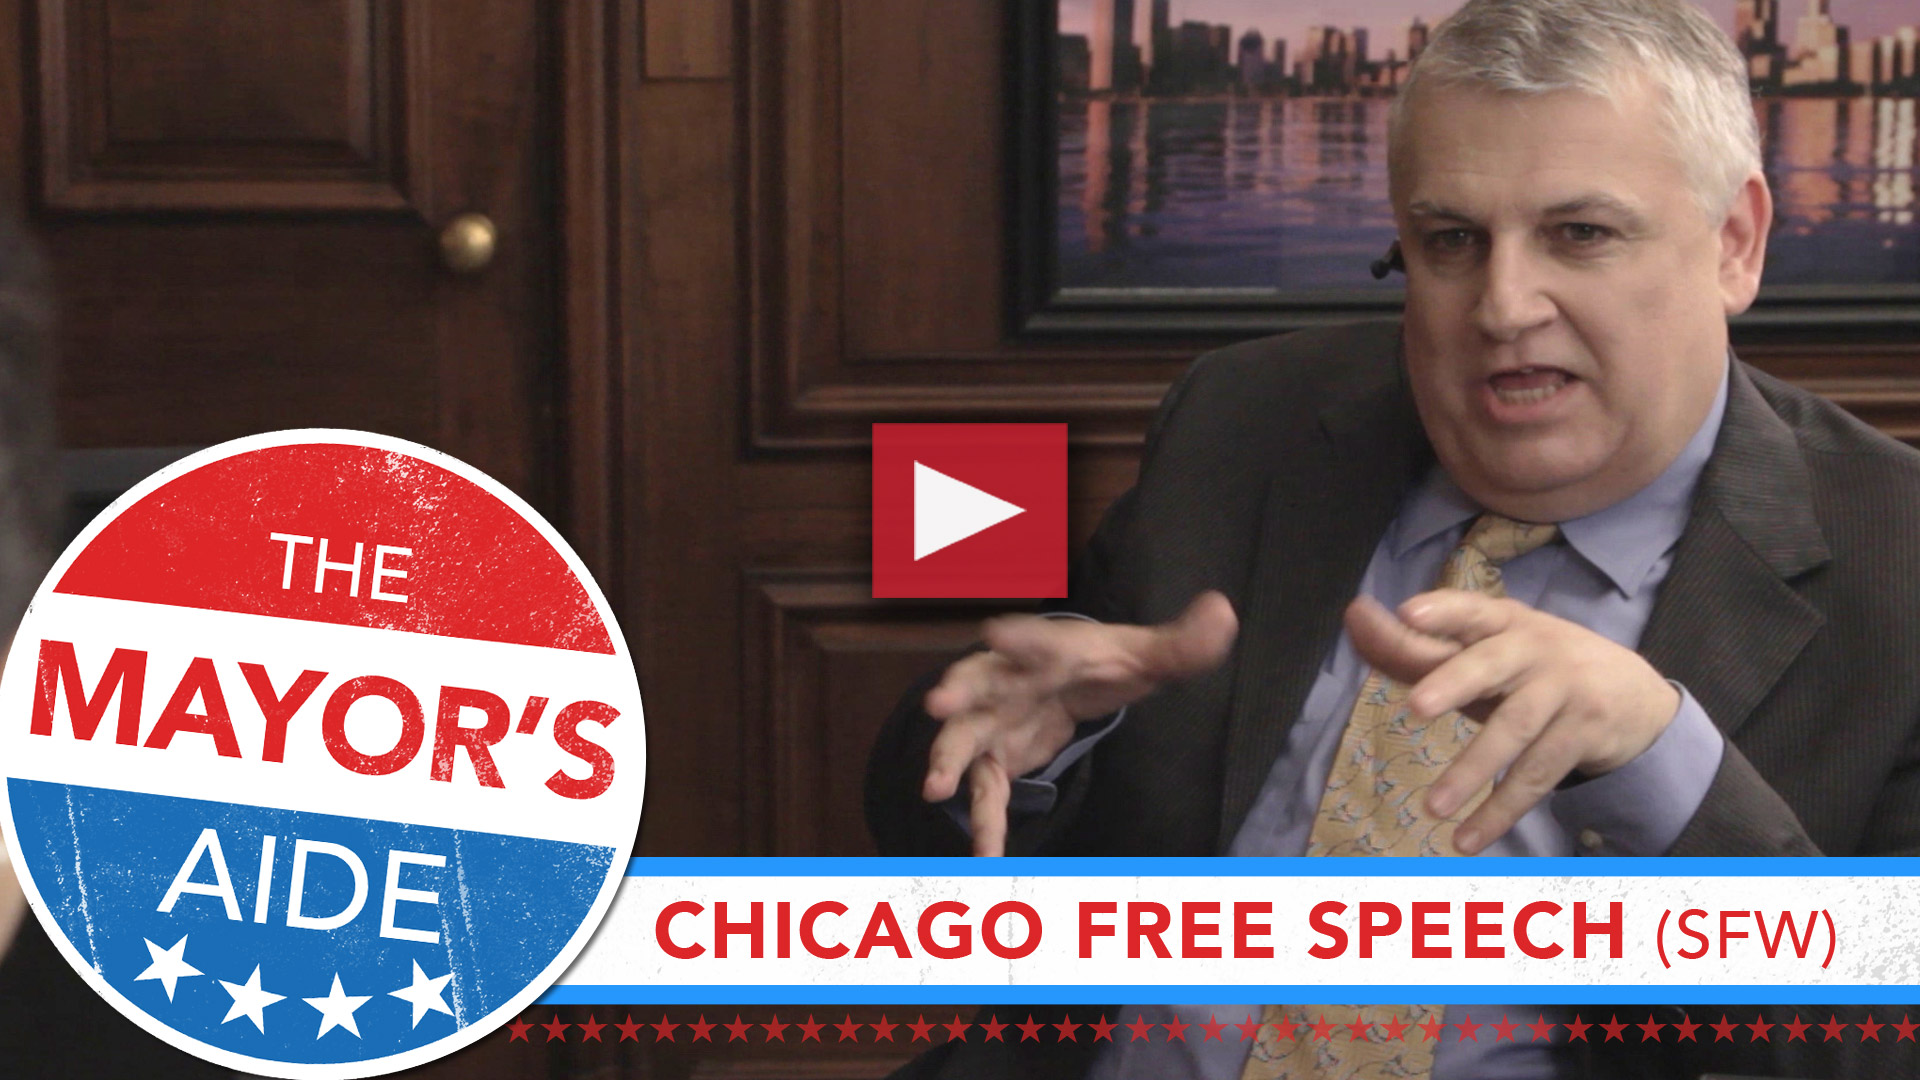 The Mayor's Aide - Chicago Free Speech (Safe for Work)